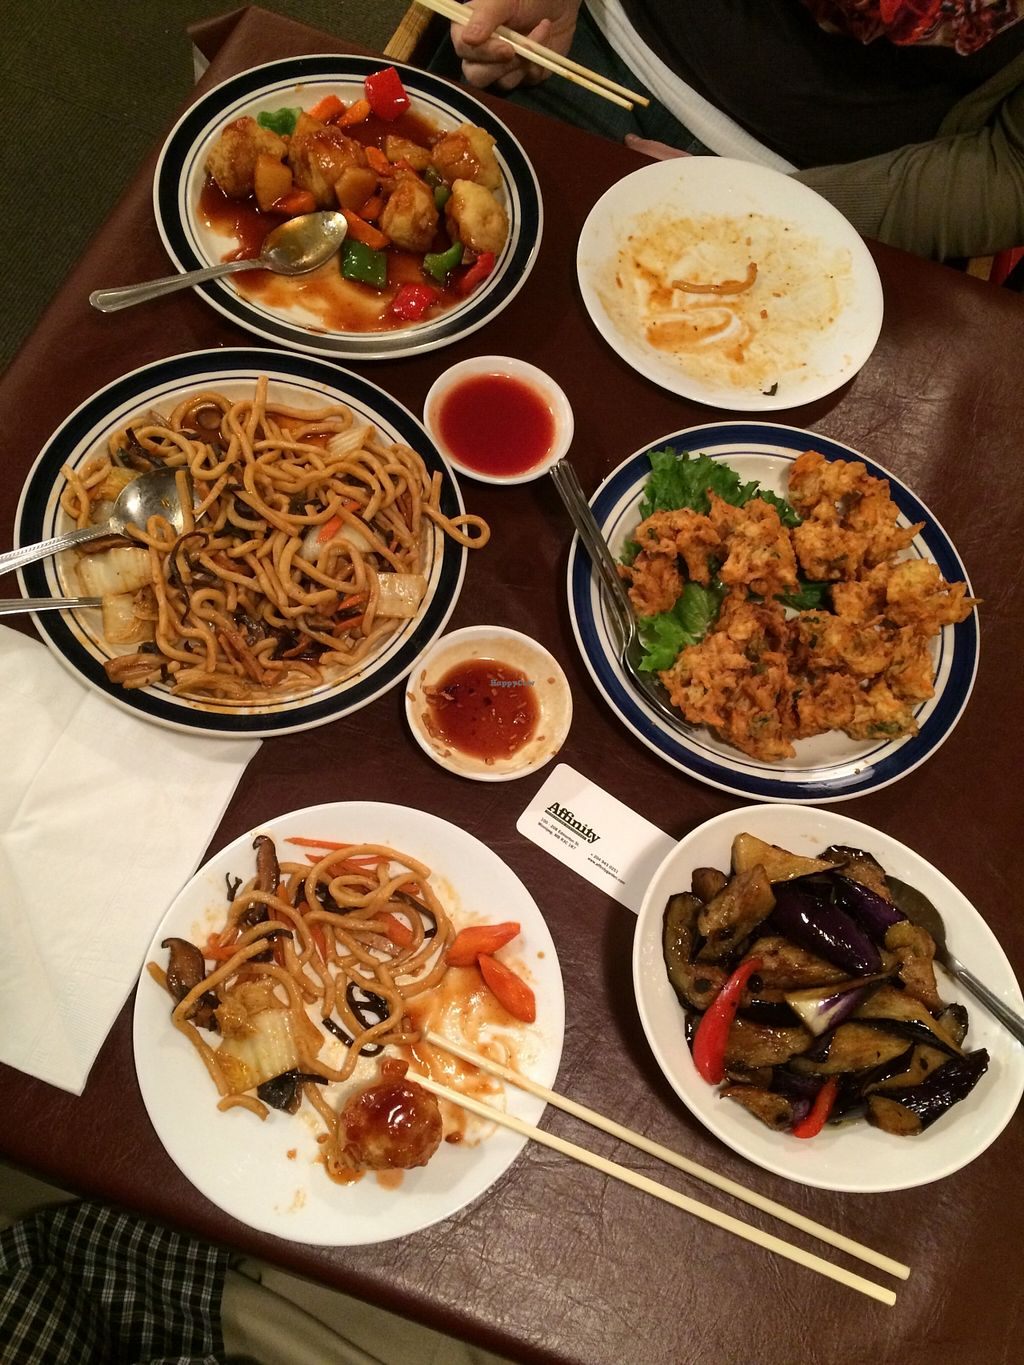 "Photo of Affinity Vegetarian Garden  by <a href=""/members/profile/sniph10"">sniph10</a> <br/>Various menu items. Lots of leftovers for 2 people. Bottom right is Menu Item # 19. Eggplants in Black Bean Sauce <br/> January 16, 2016  - <a href='/contact/abuse/image/1288/132607'>Report</a>"